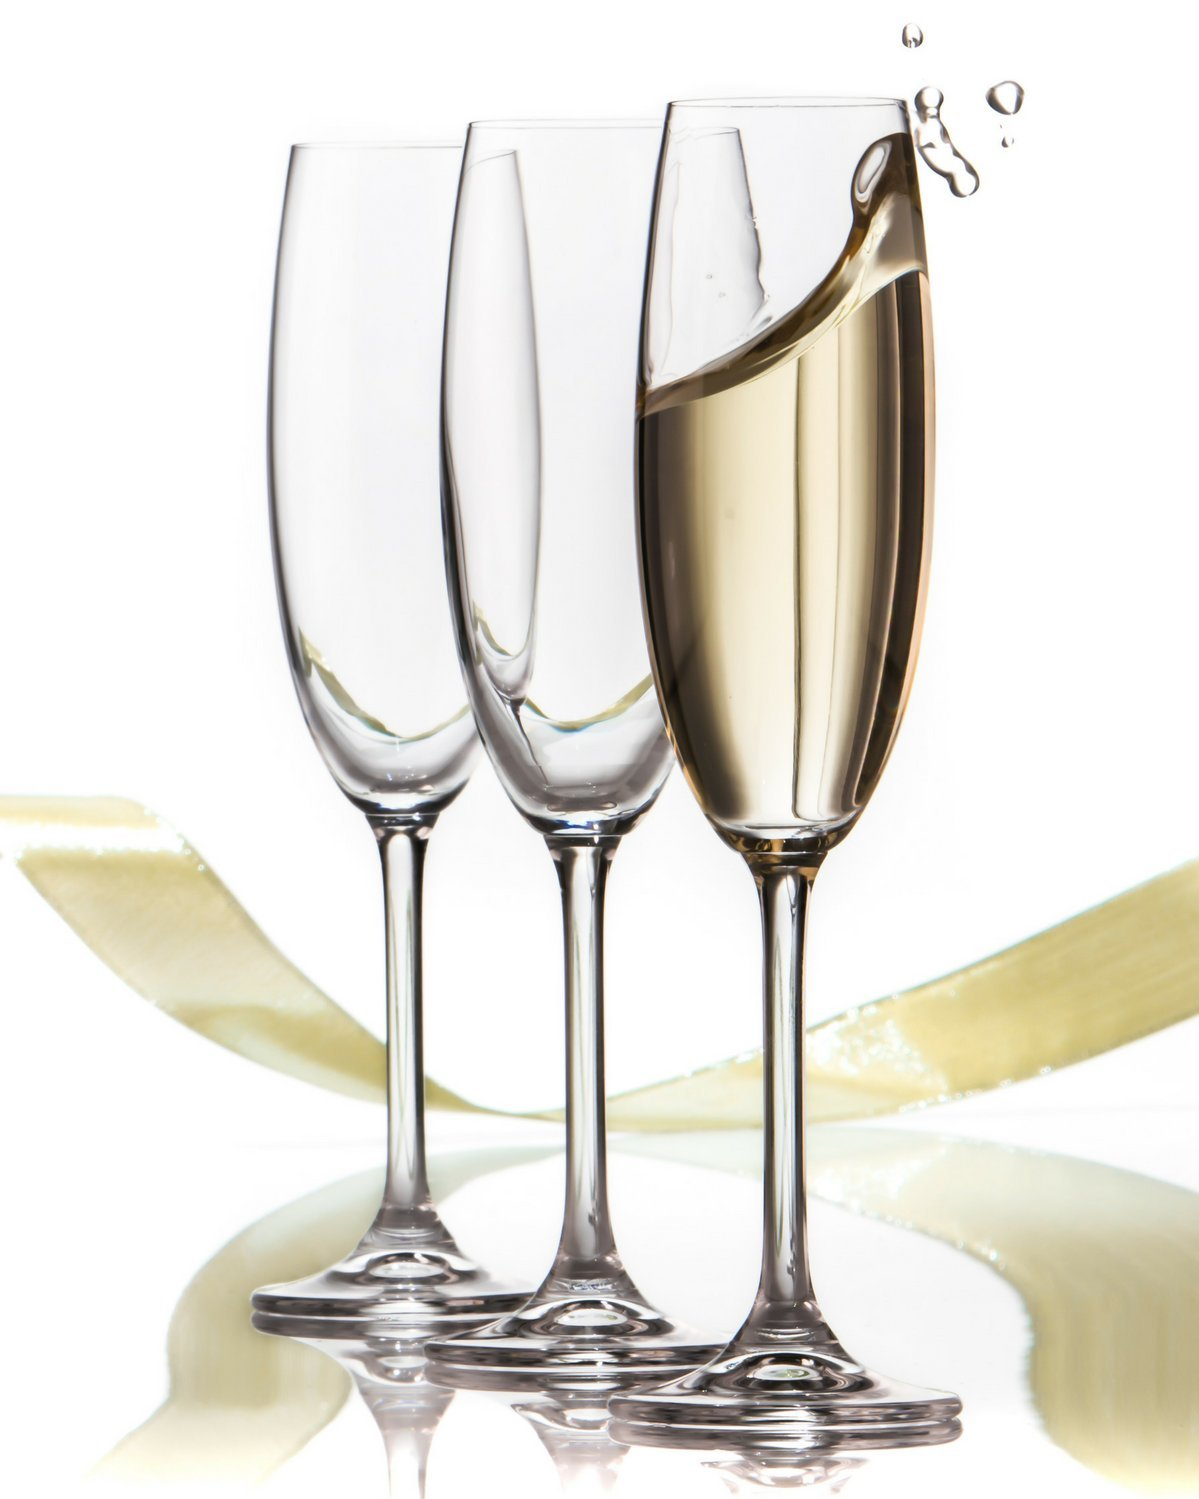 Amazon.com: Champagne Glasses Set - Lead Free Titanium Crystal Sparkling Wine  Glass, 7.5 oz. Elegant Fluted Glassware - Best For Weddings, ...